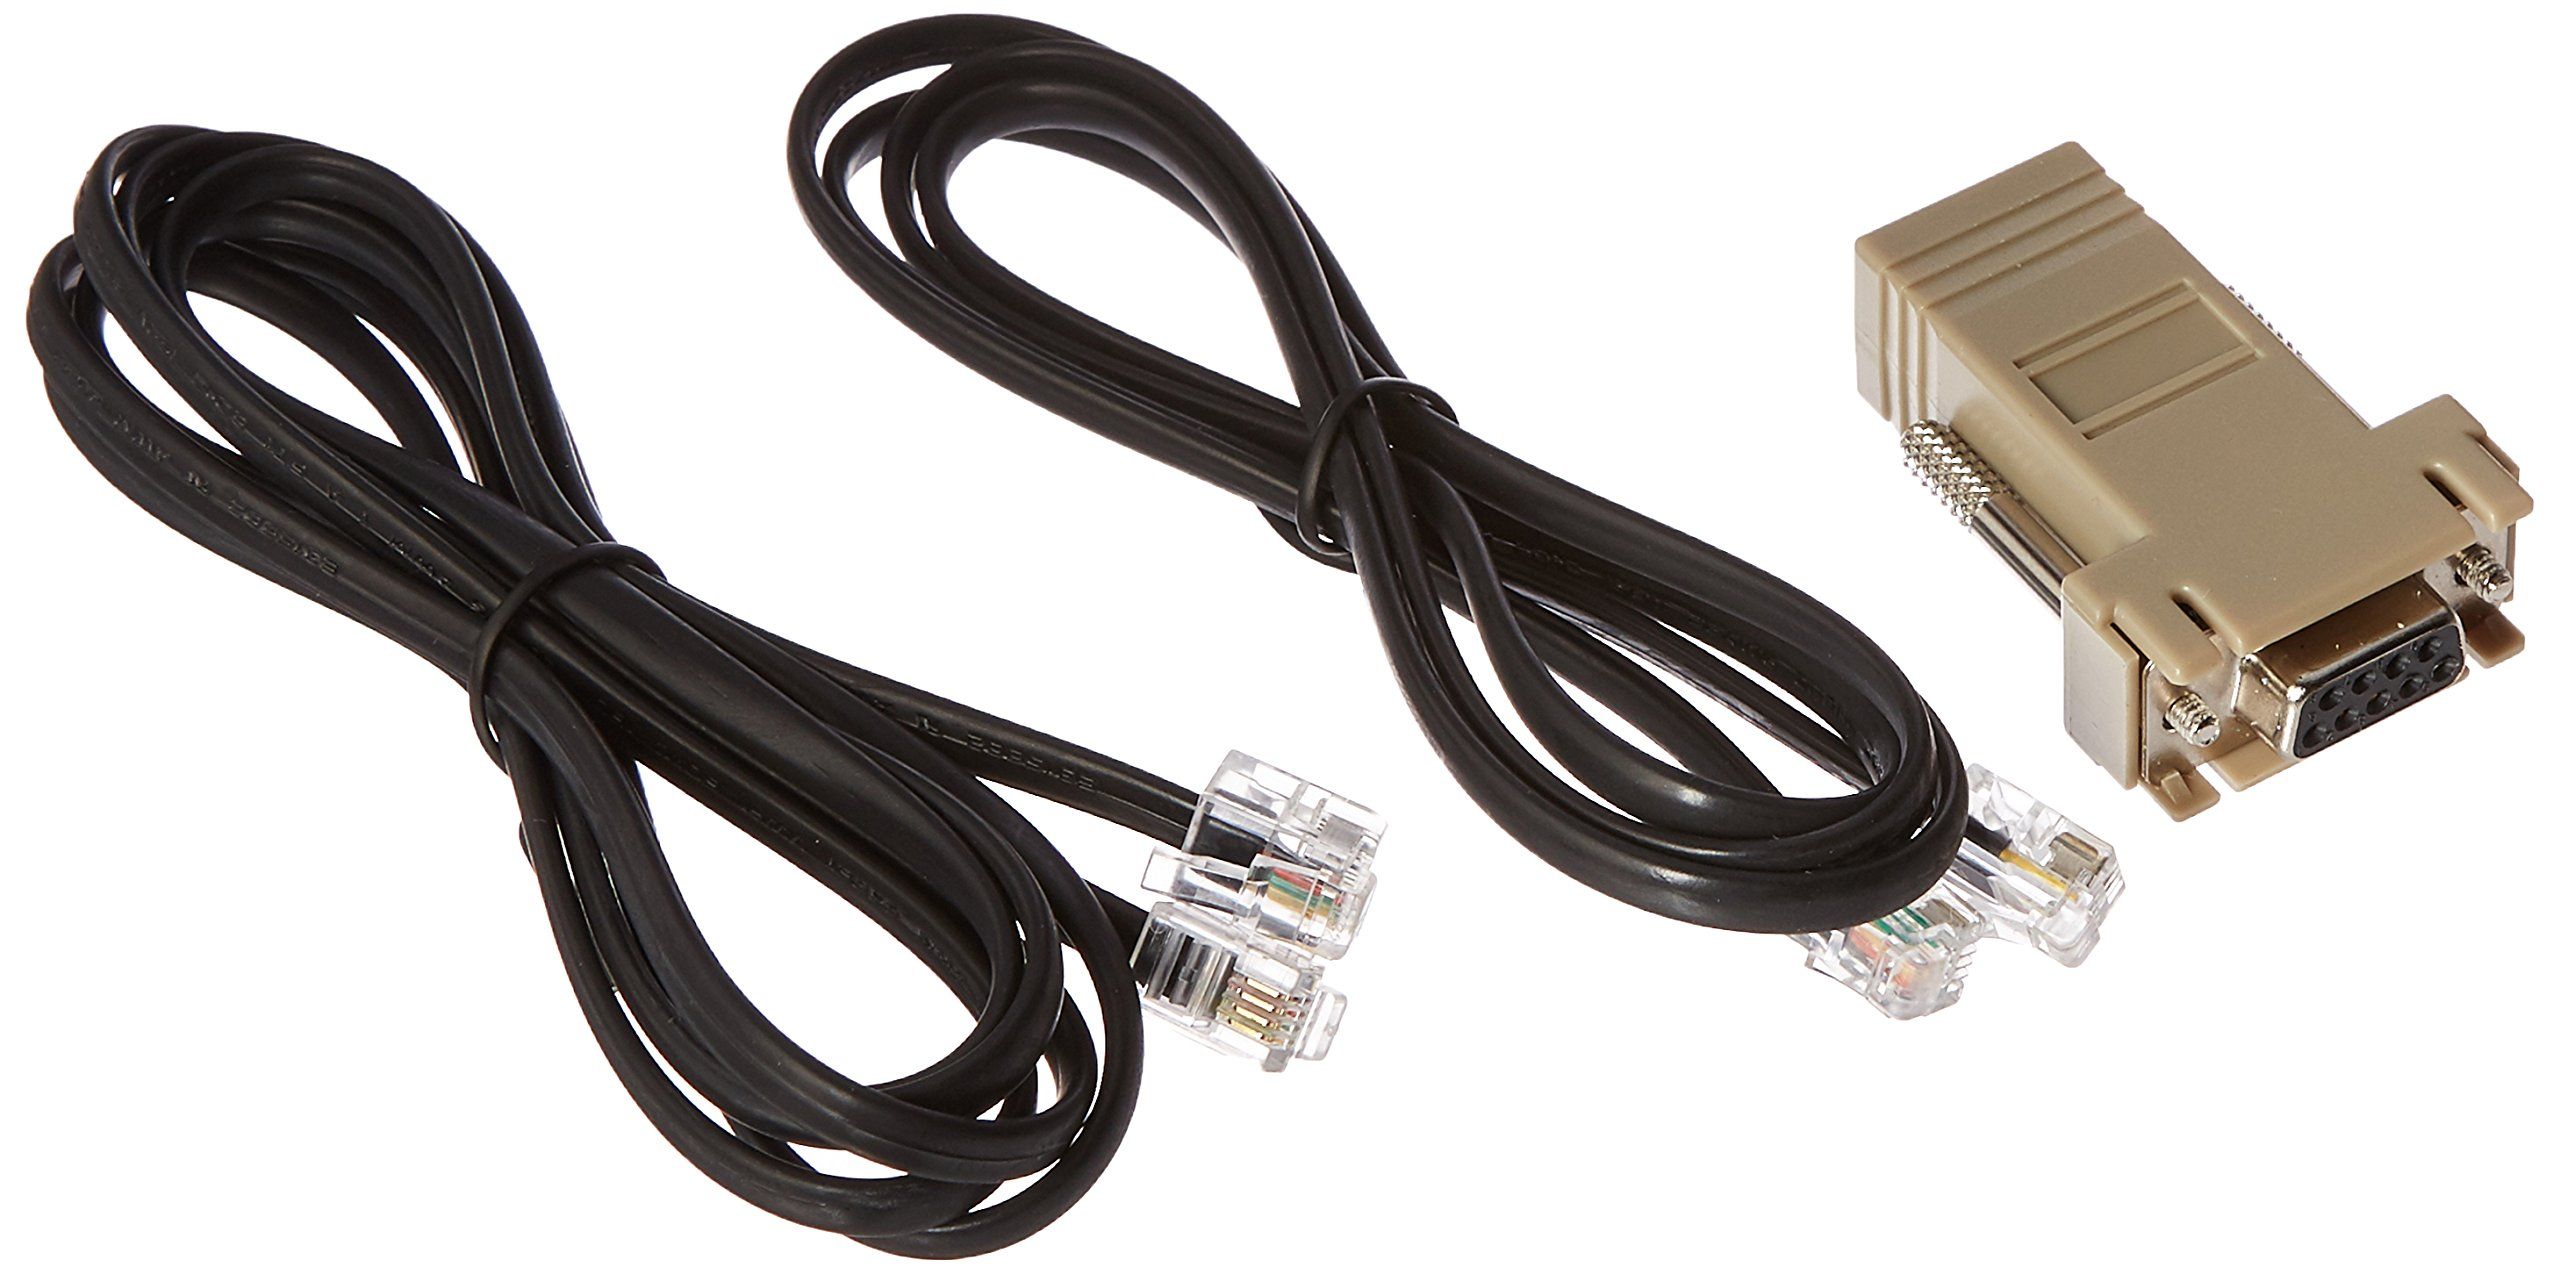 Meade Instruments 07505 No.505 Cable Connector Set for No.497 AutoStar and AudioStar Equipped Models (Black)